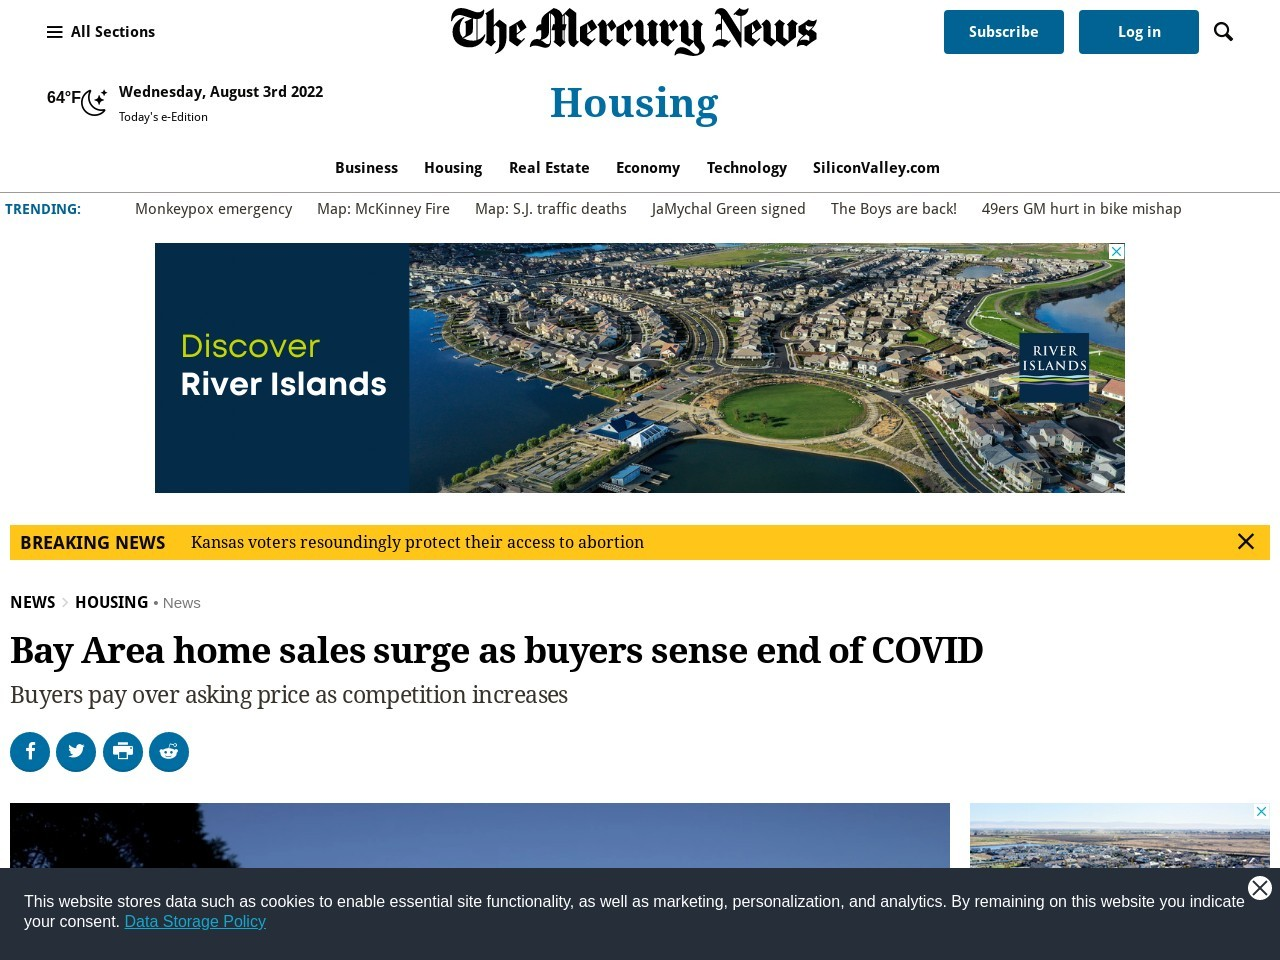 Bay Area home sales surge as buyers sense end of COVID – The Mercury News